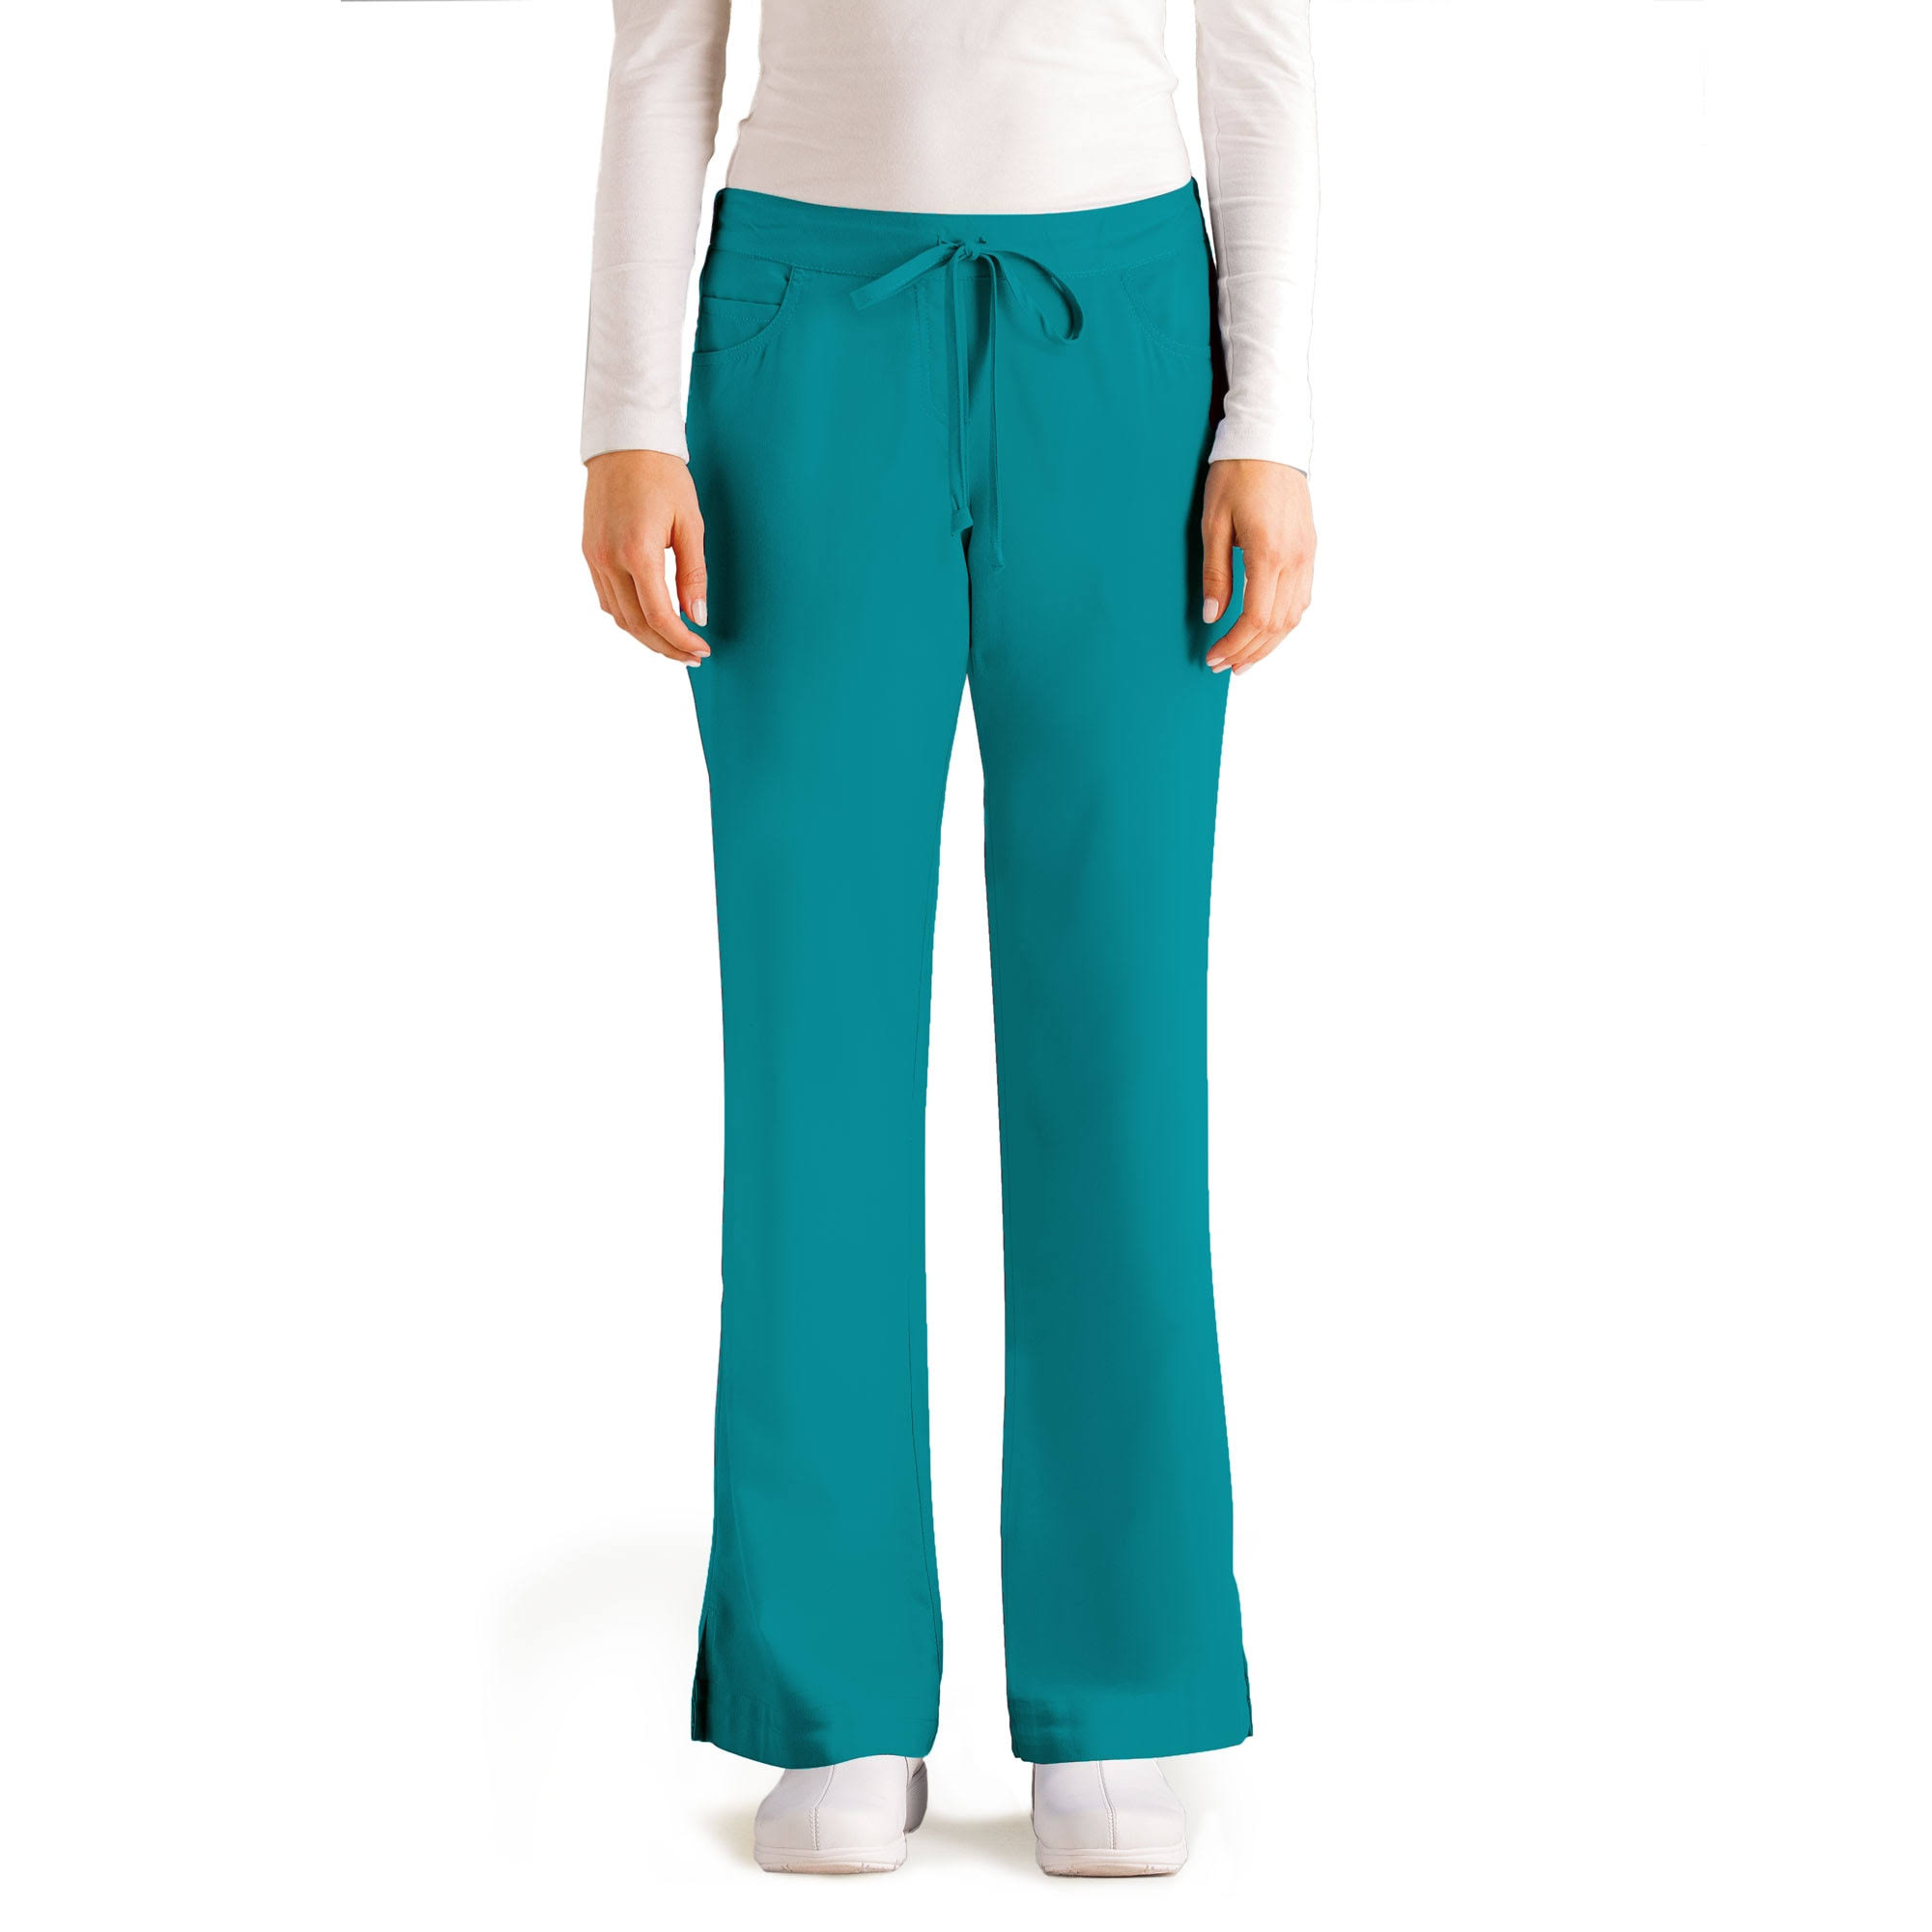 Grey's Anatomy Women's Junior Fit FivePocket Drawstring Scrub Pant - Teal, X-Large